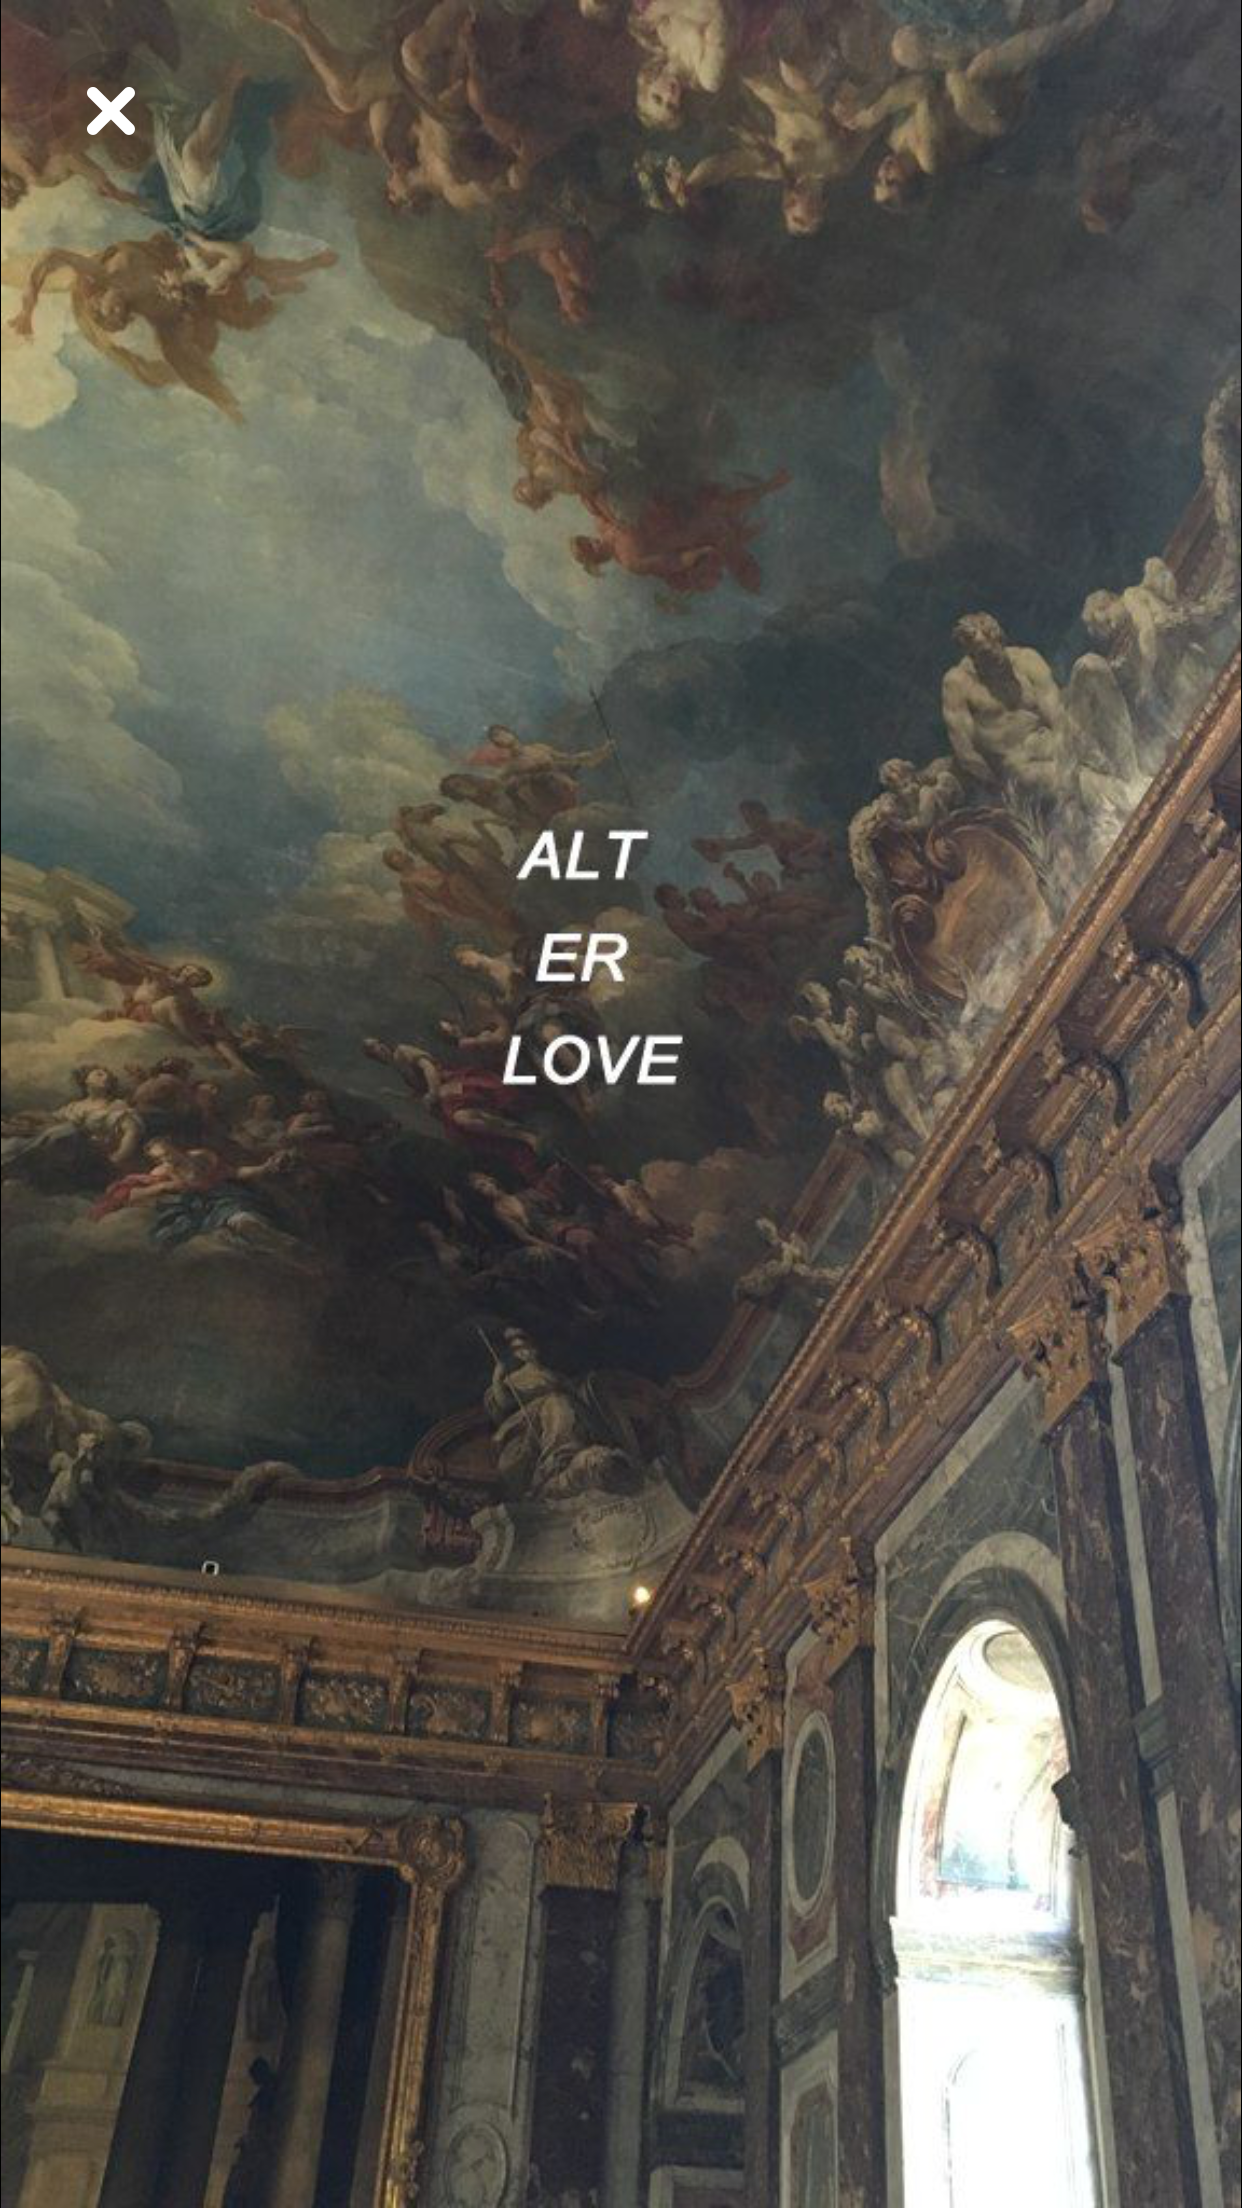 Alt er love museums exhibitions pinterest wallpaper - Classic art wallpaper iphone 5 ...